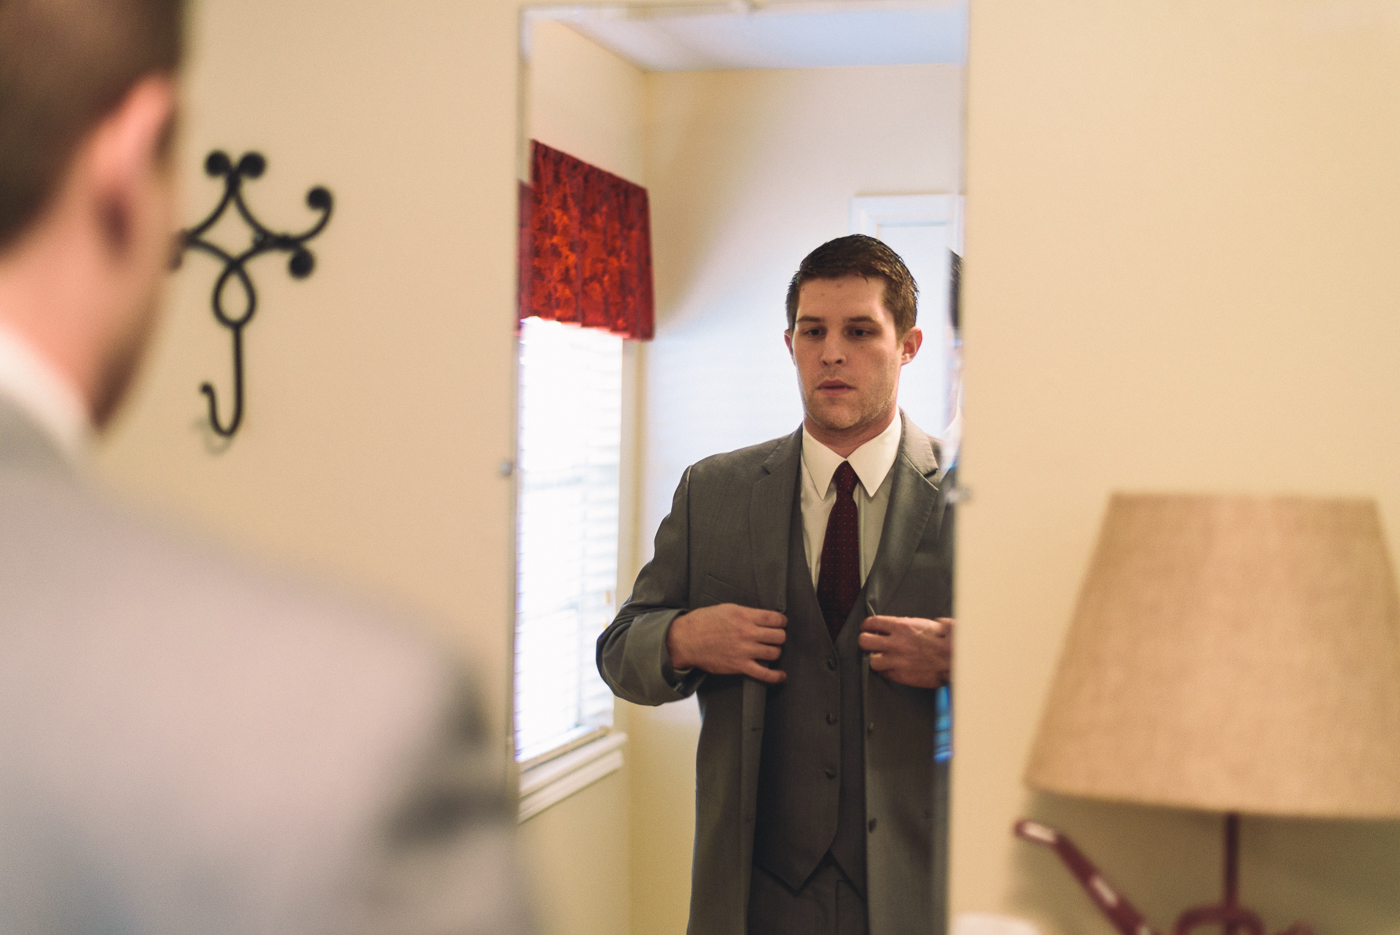 groom dressing getting ready suit and tie mirror